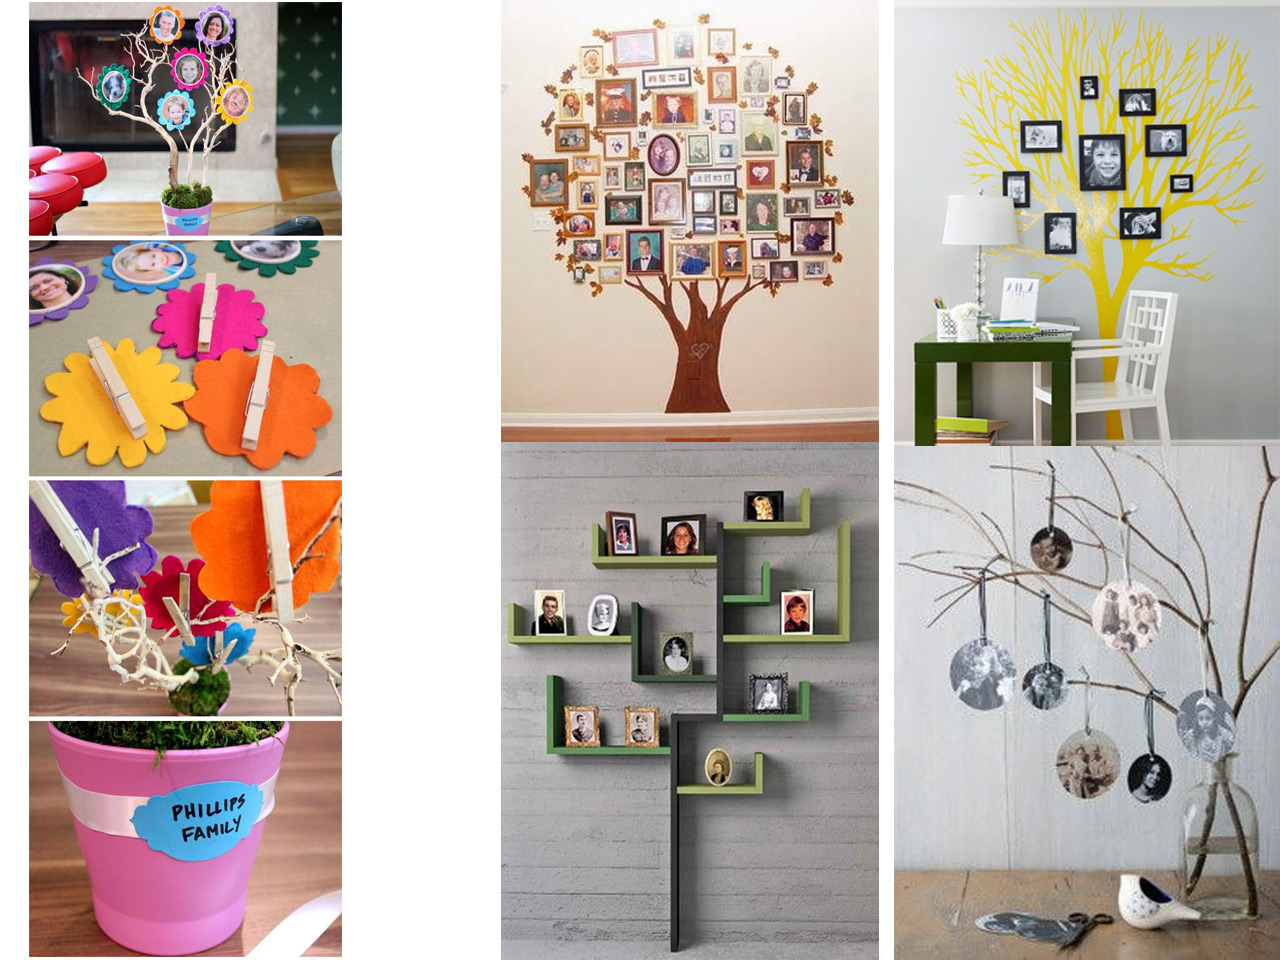 60 brillantes ideas para decorar con fotos familiares for Ver decoraciones